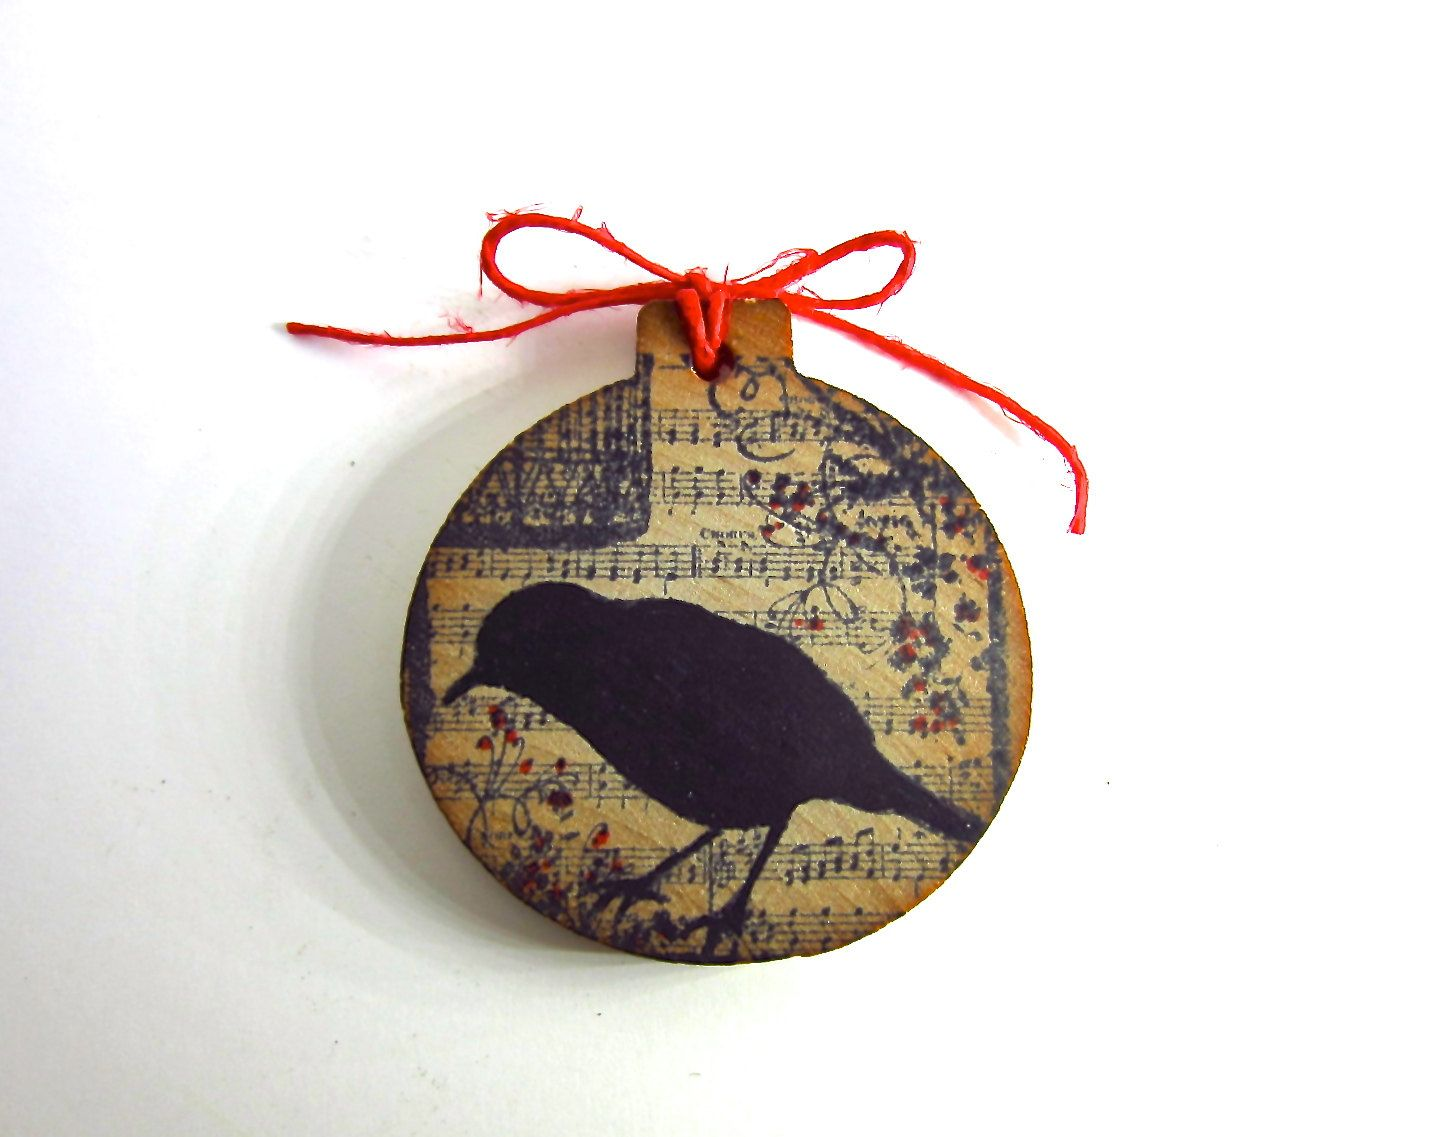 raven black bird christmas ornament xmas tree decor stamped crow with music sheet and bird cage ephemera and vintage inspired gothic 550 via etsy - Bird Christmas Ornaments